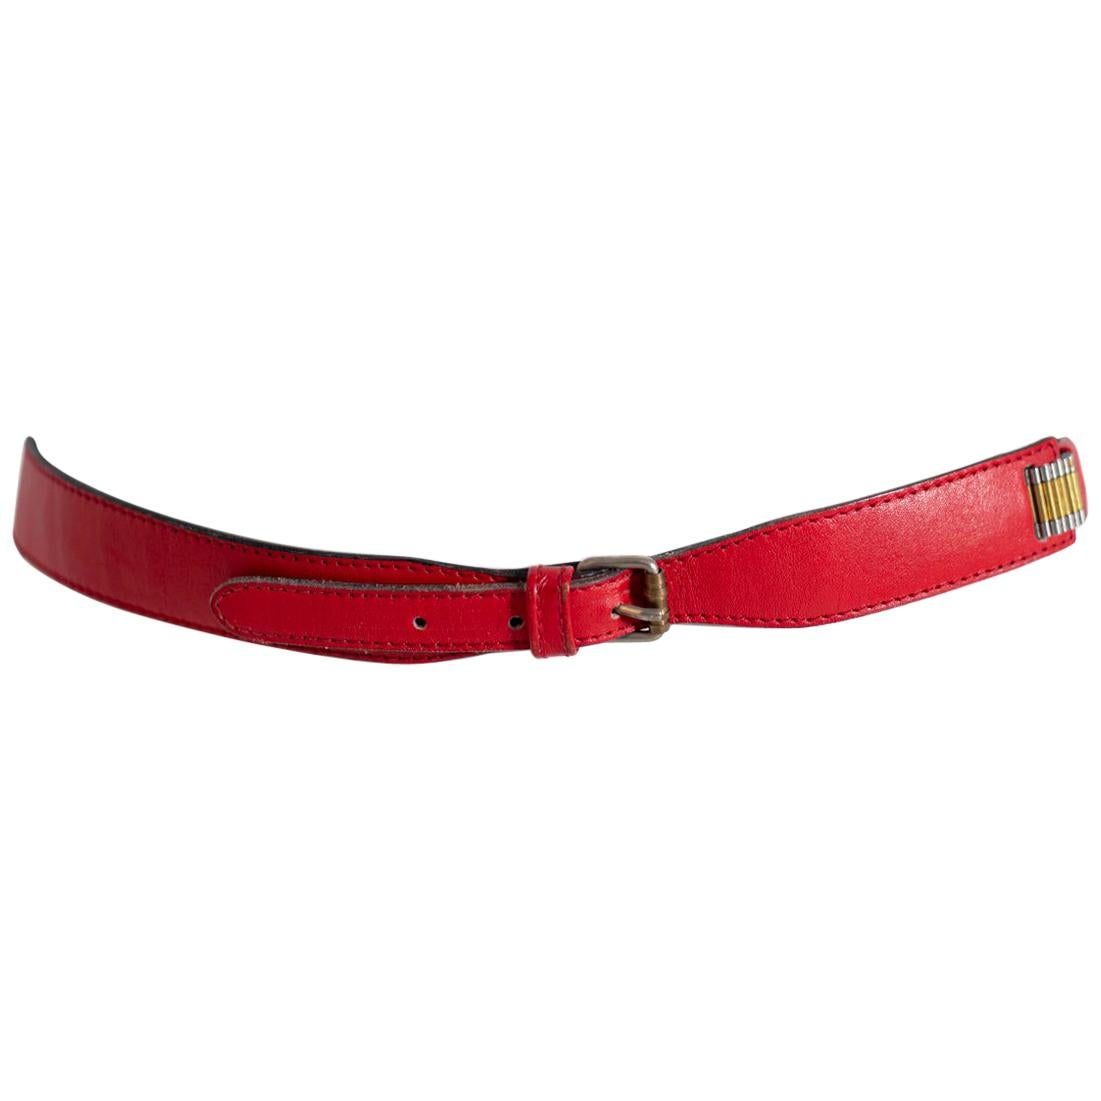 Gianni Versace Red Leather Women's Belt with Metal Details